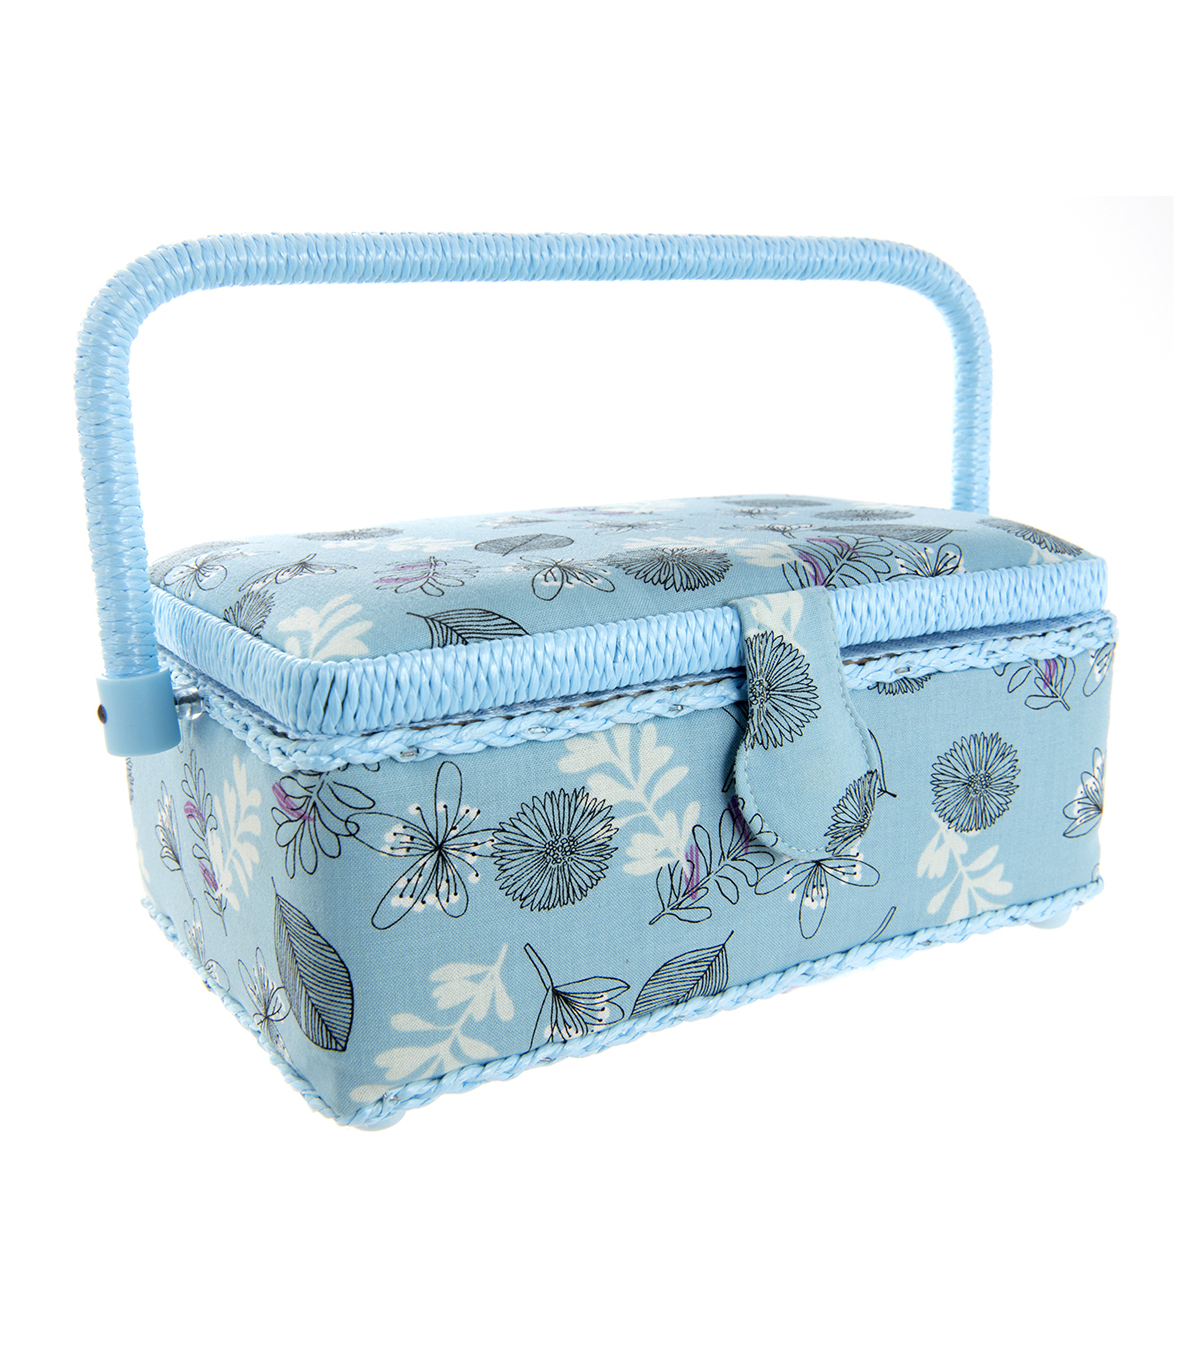 Small Rectangle Sewing Basket-Blue Leaf & Floral